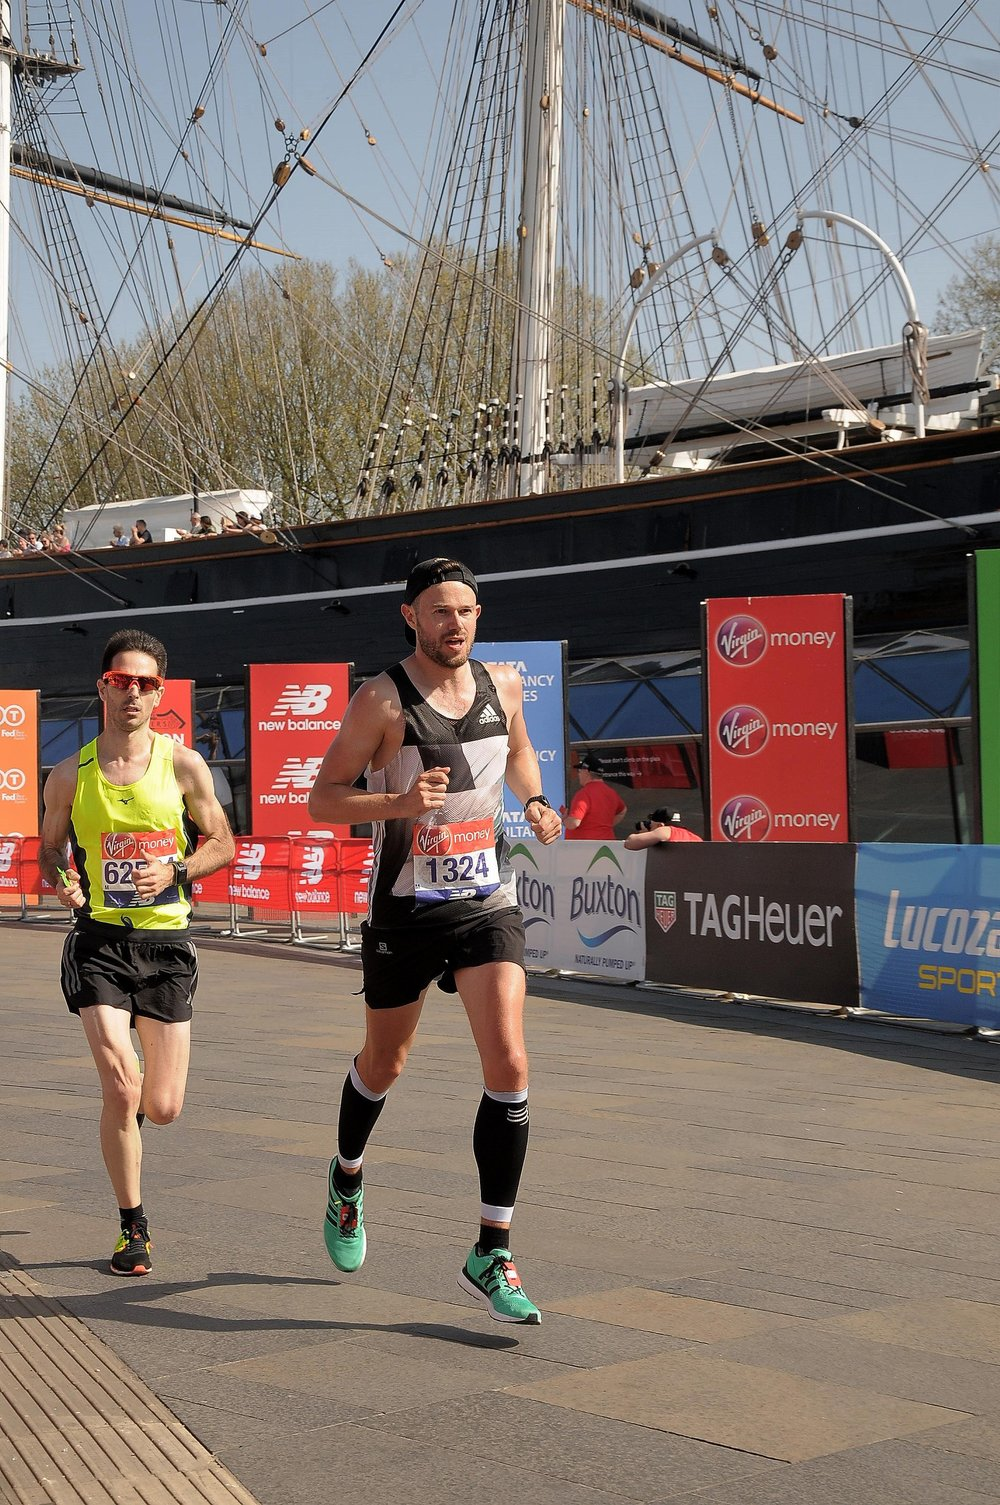 Cutty Sark and 10k in 34:52